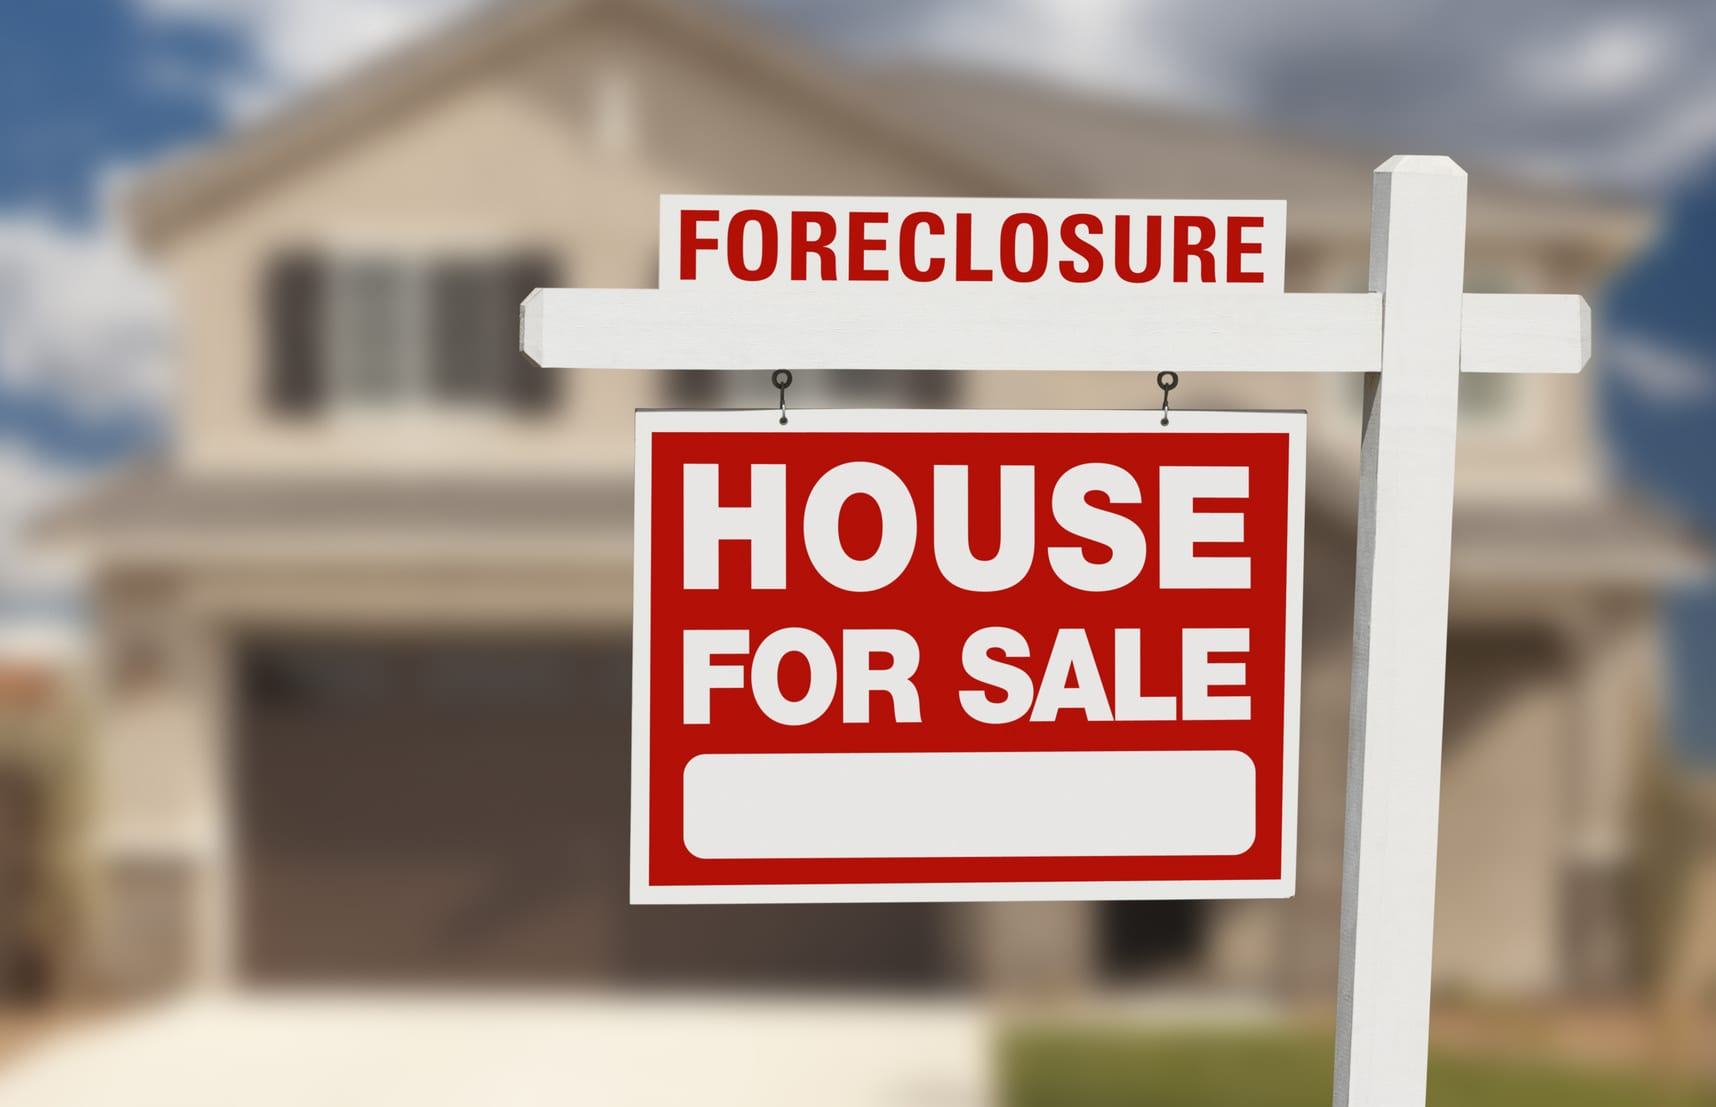 How Long Does Foreclosure Take In Virginia - Virginia Beach, Chesapeake, Newport News, Norfolk, Richmond